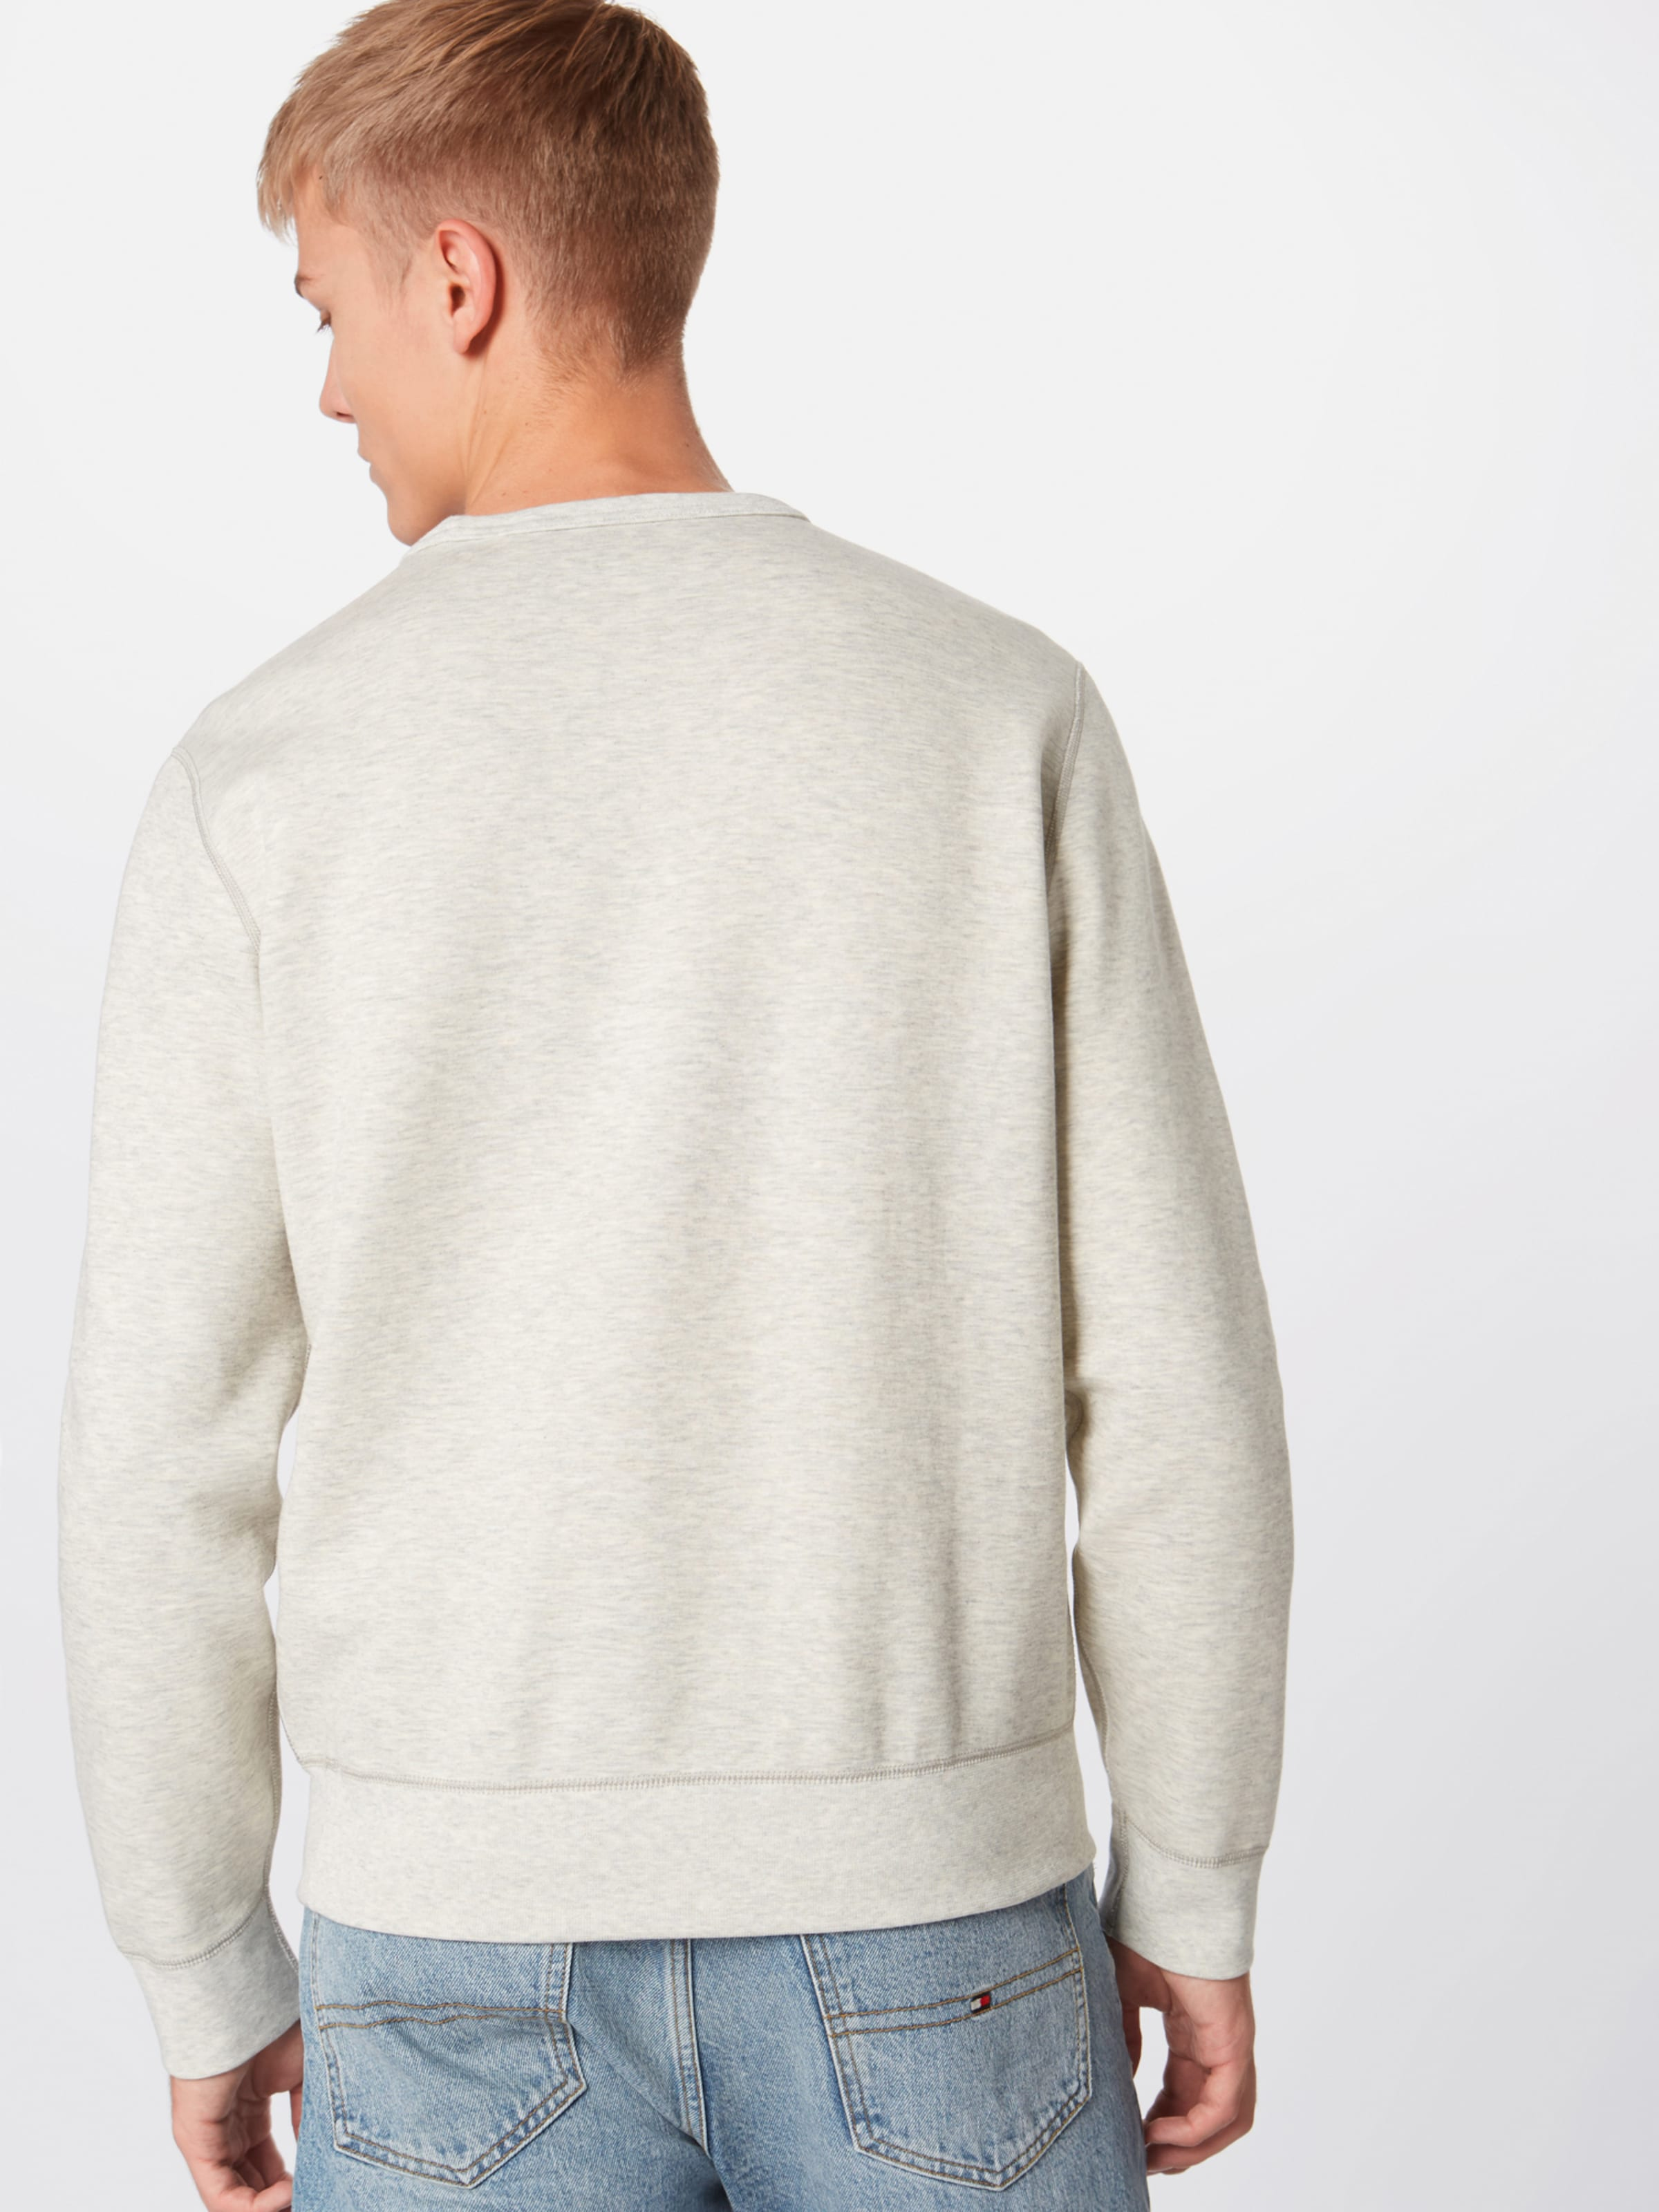 Sleeve 'lscnm6 long Grau Polo Sweatshirt In Lauren Ralph knit' xQCBerdoW